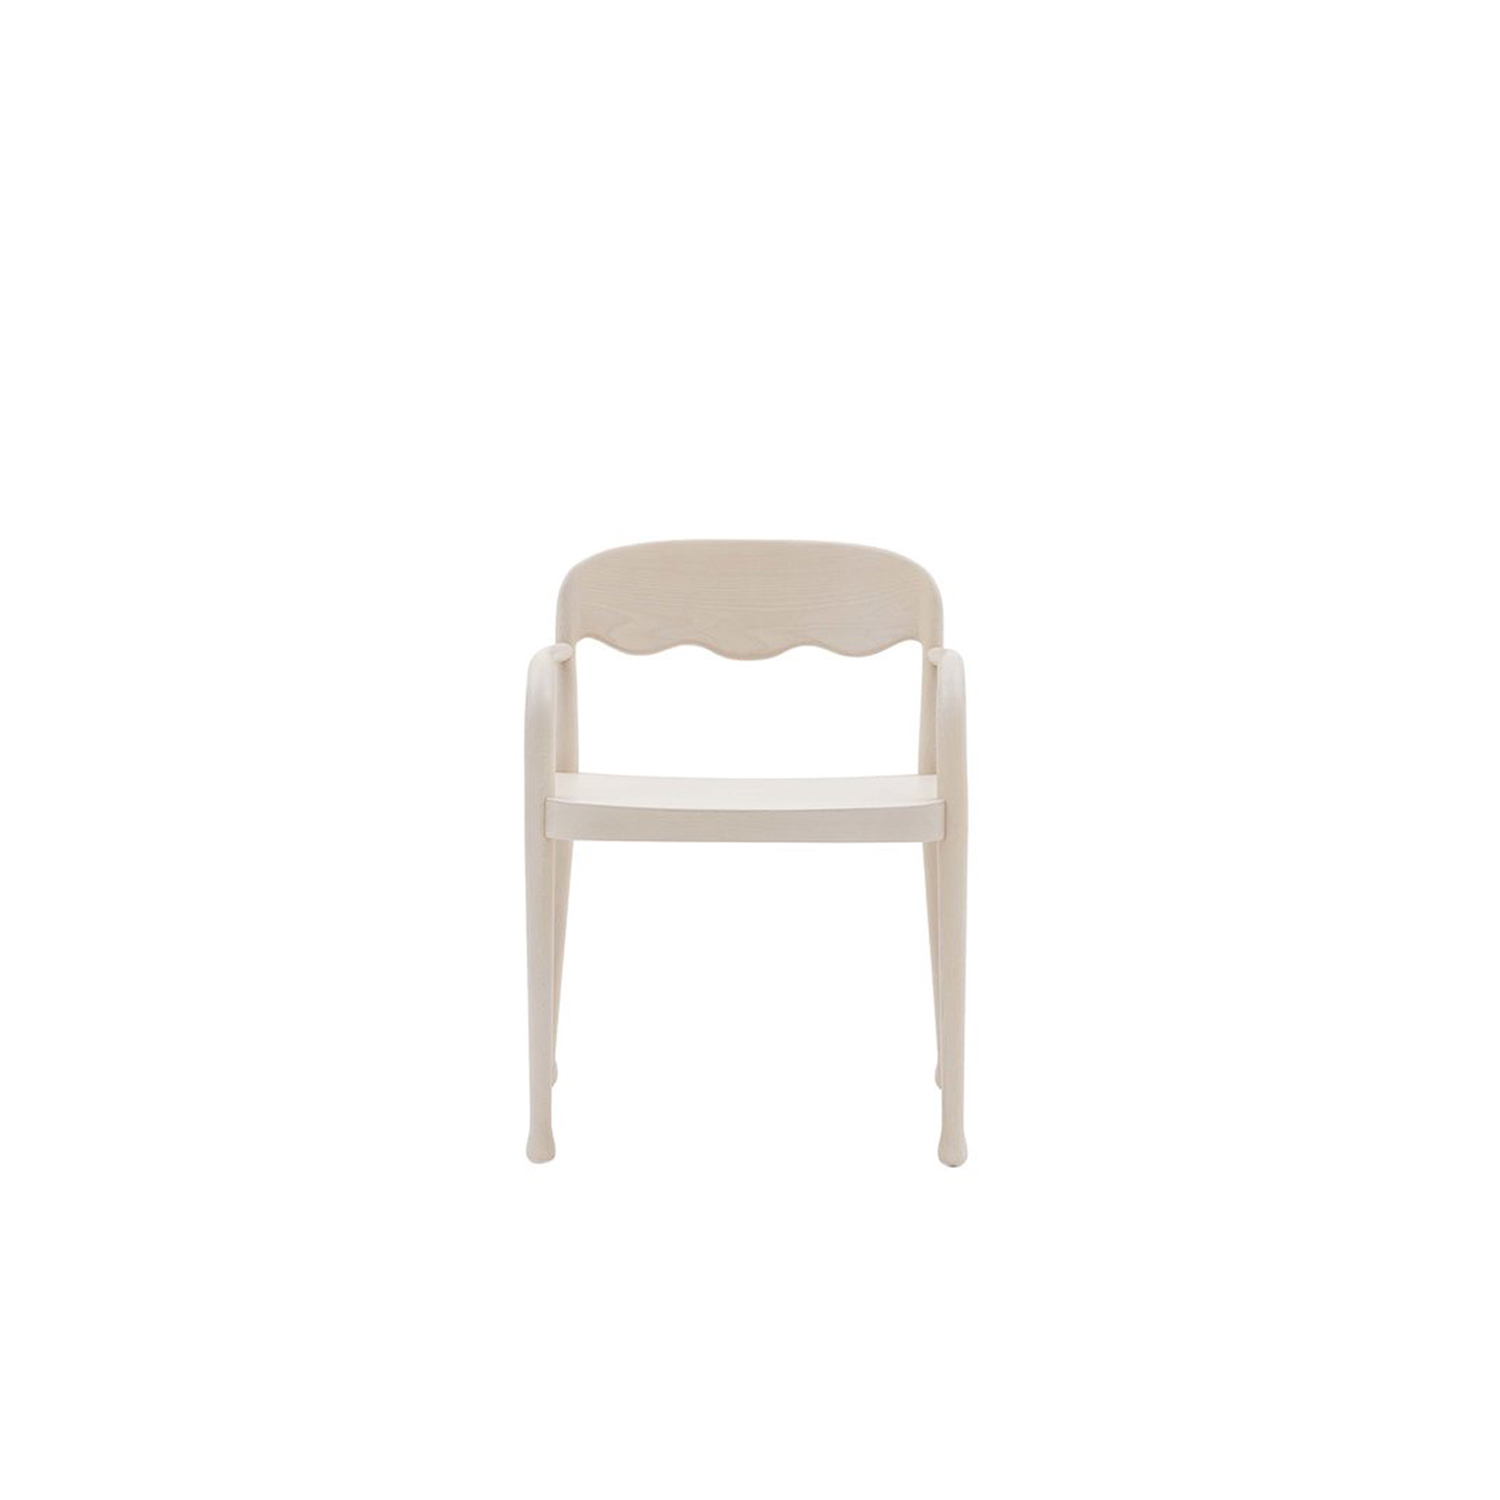 Frisee Armchair - The Frisee Armchair is an ergonomic and sleek armchair that fits in almost anywhere. As is noticeable in the Frisée collection it has the wavy backrest and the slightly slanted legs with felt pads. This armchair comes in either Ashwood or Beechwood and can be lacquered. Please enquire for more information.  | Matter of Stuff